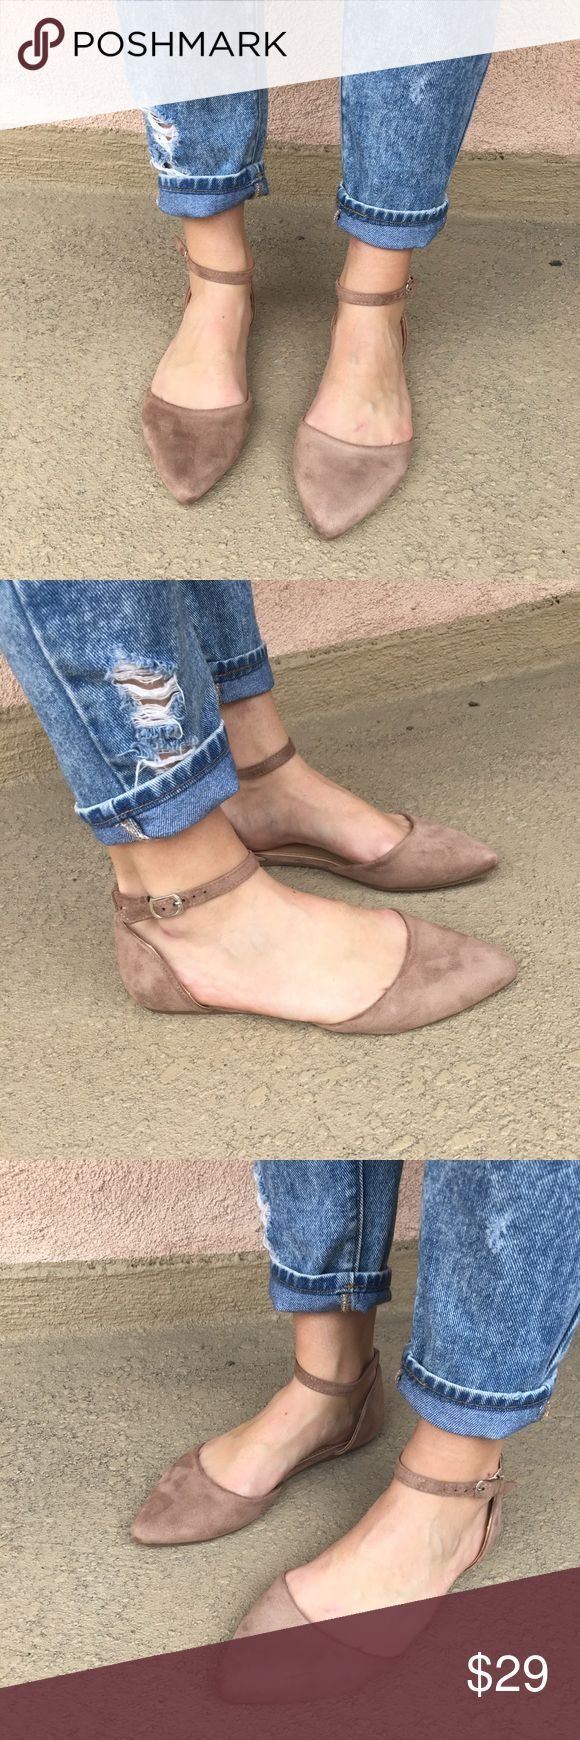 ✨NEW✨ BRITT Closed Toe Ankle Strap Flat Adorable and extremely comfortable t... - My Posh Picks -